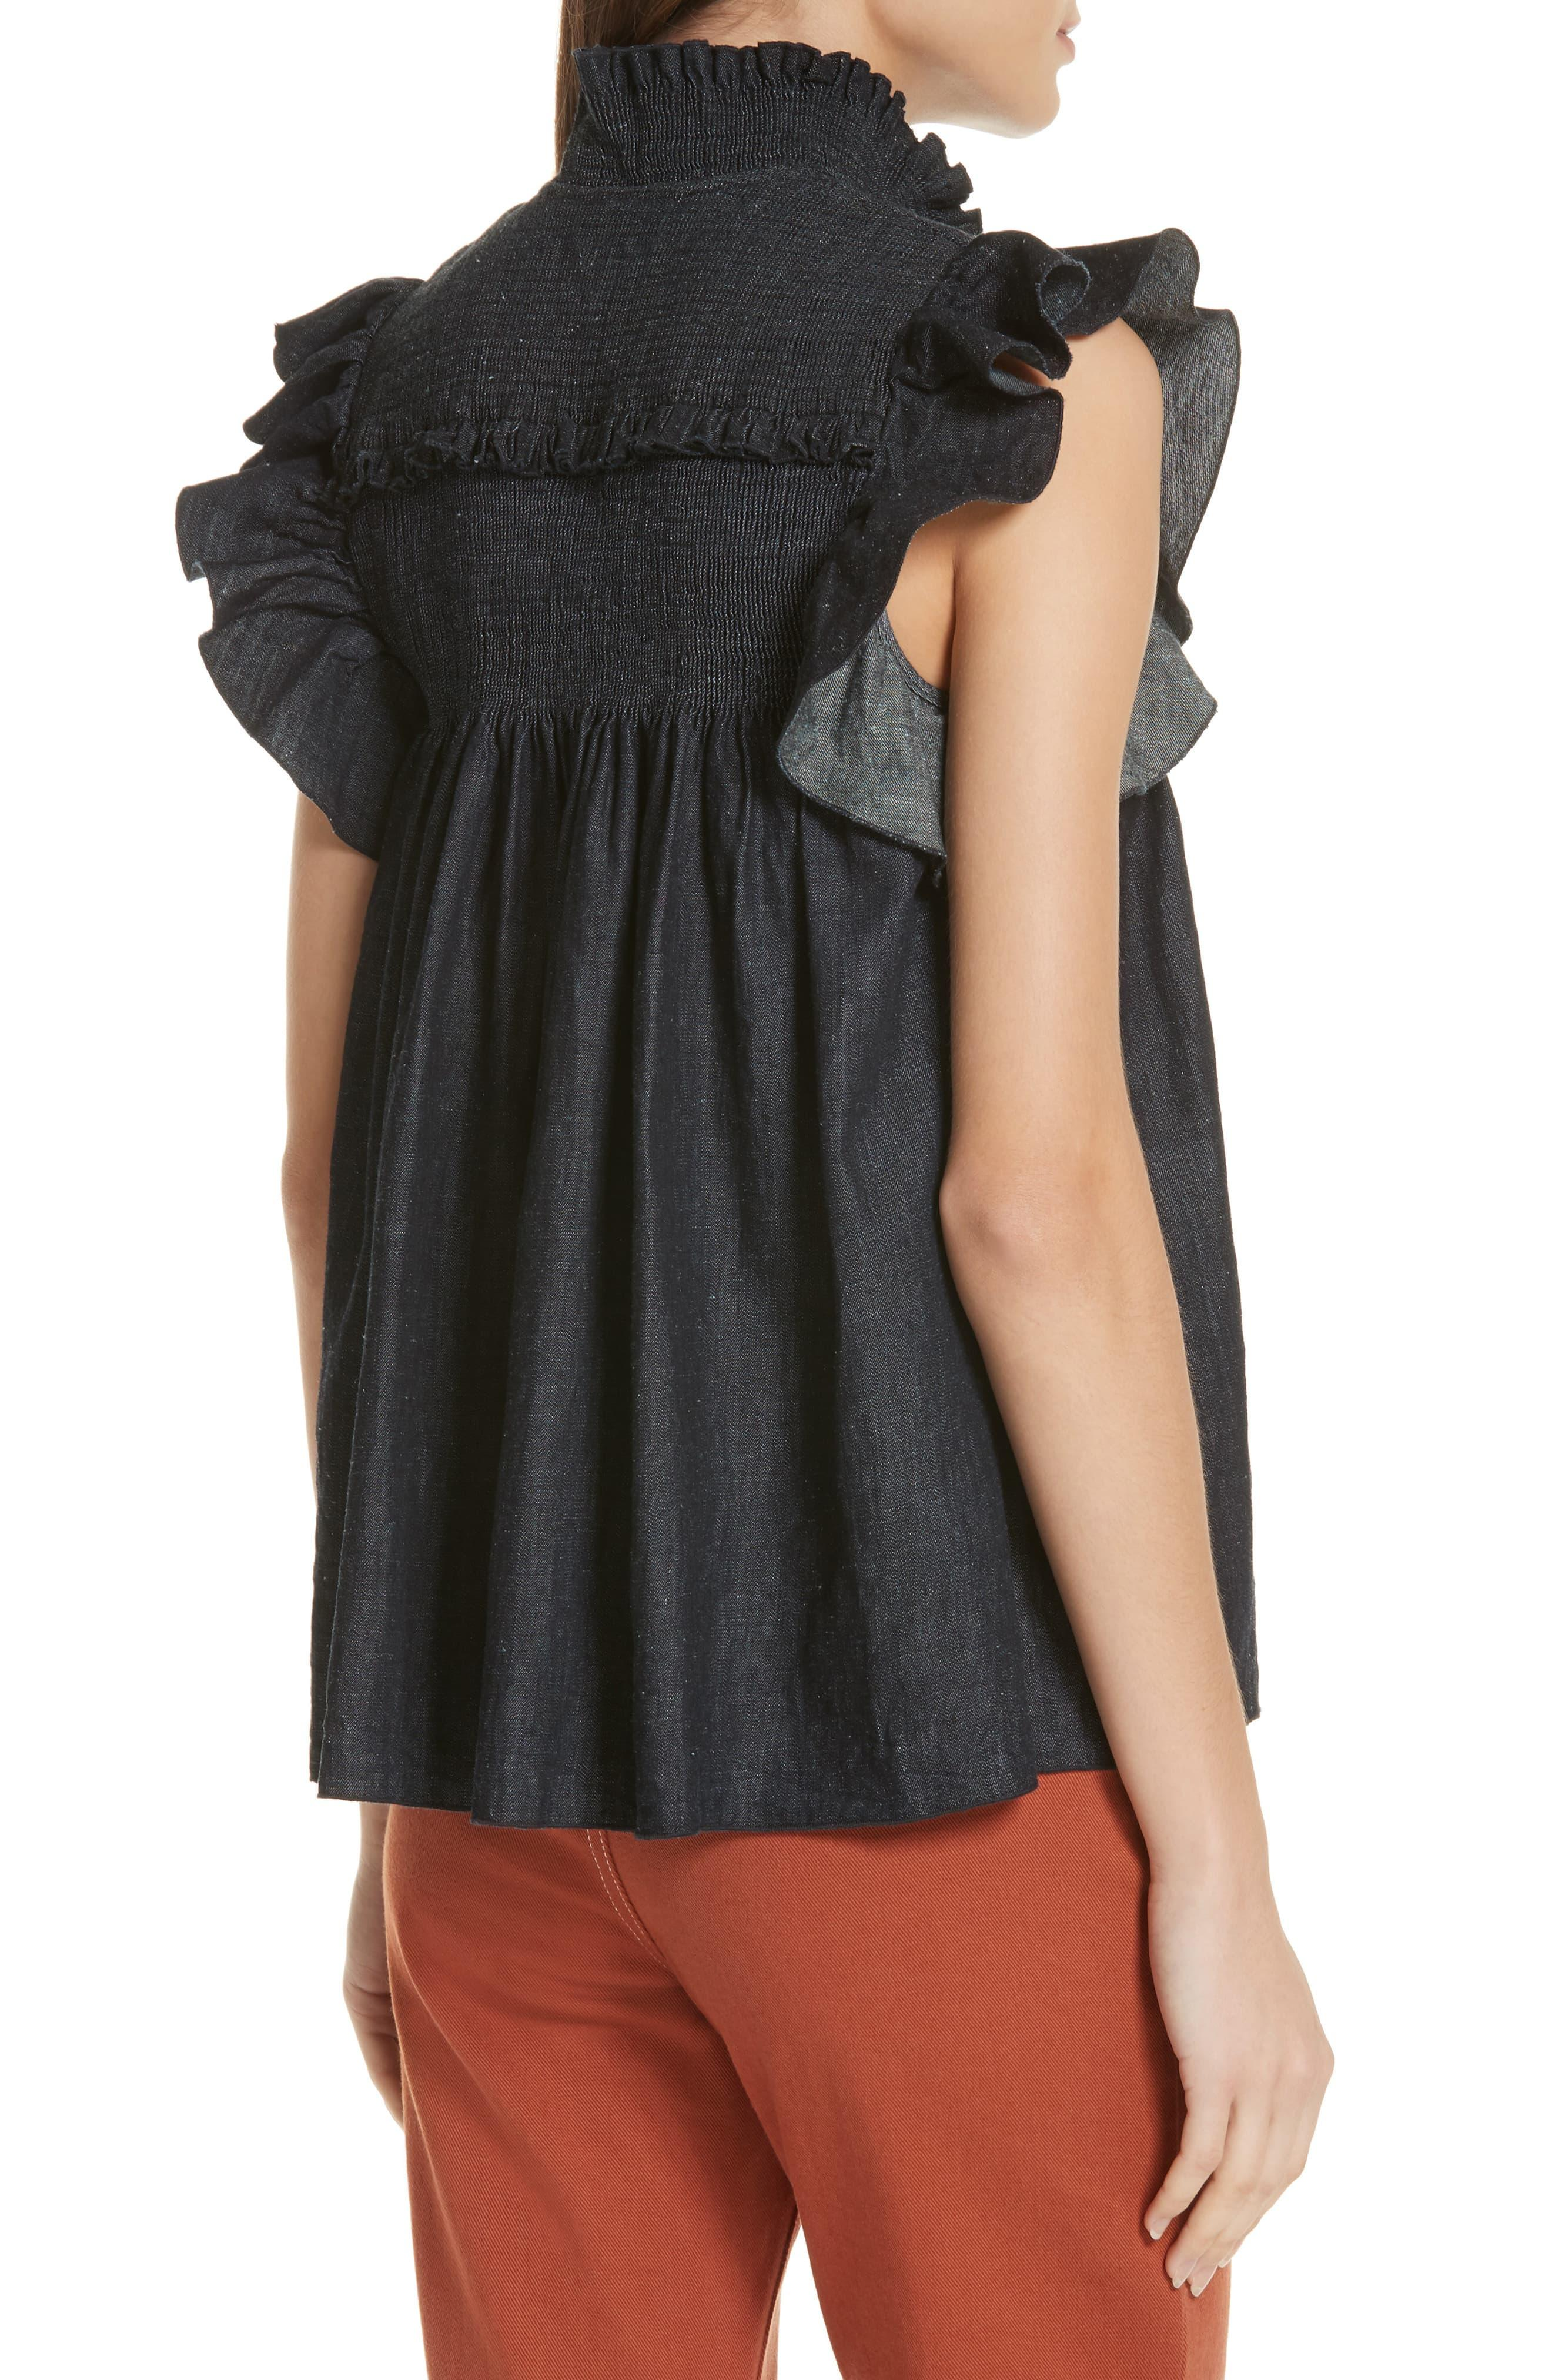 2241a50dd6376 See By Chloé See By Chloé Smocked Ruffle Sleeve Chambray Top in ...